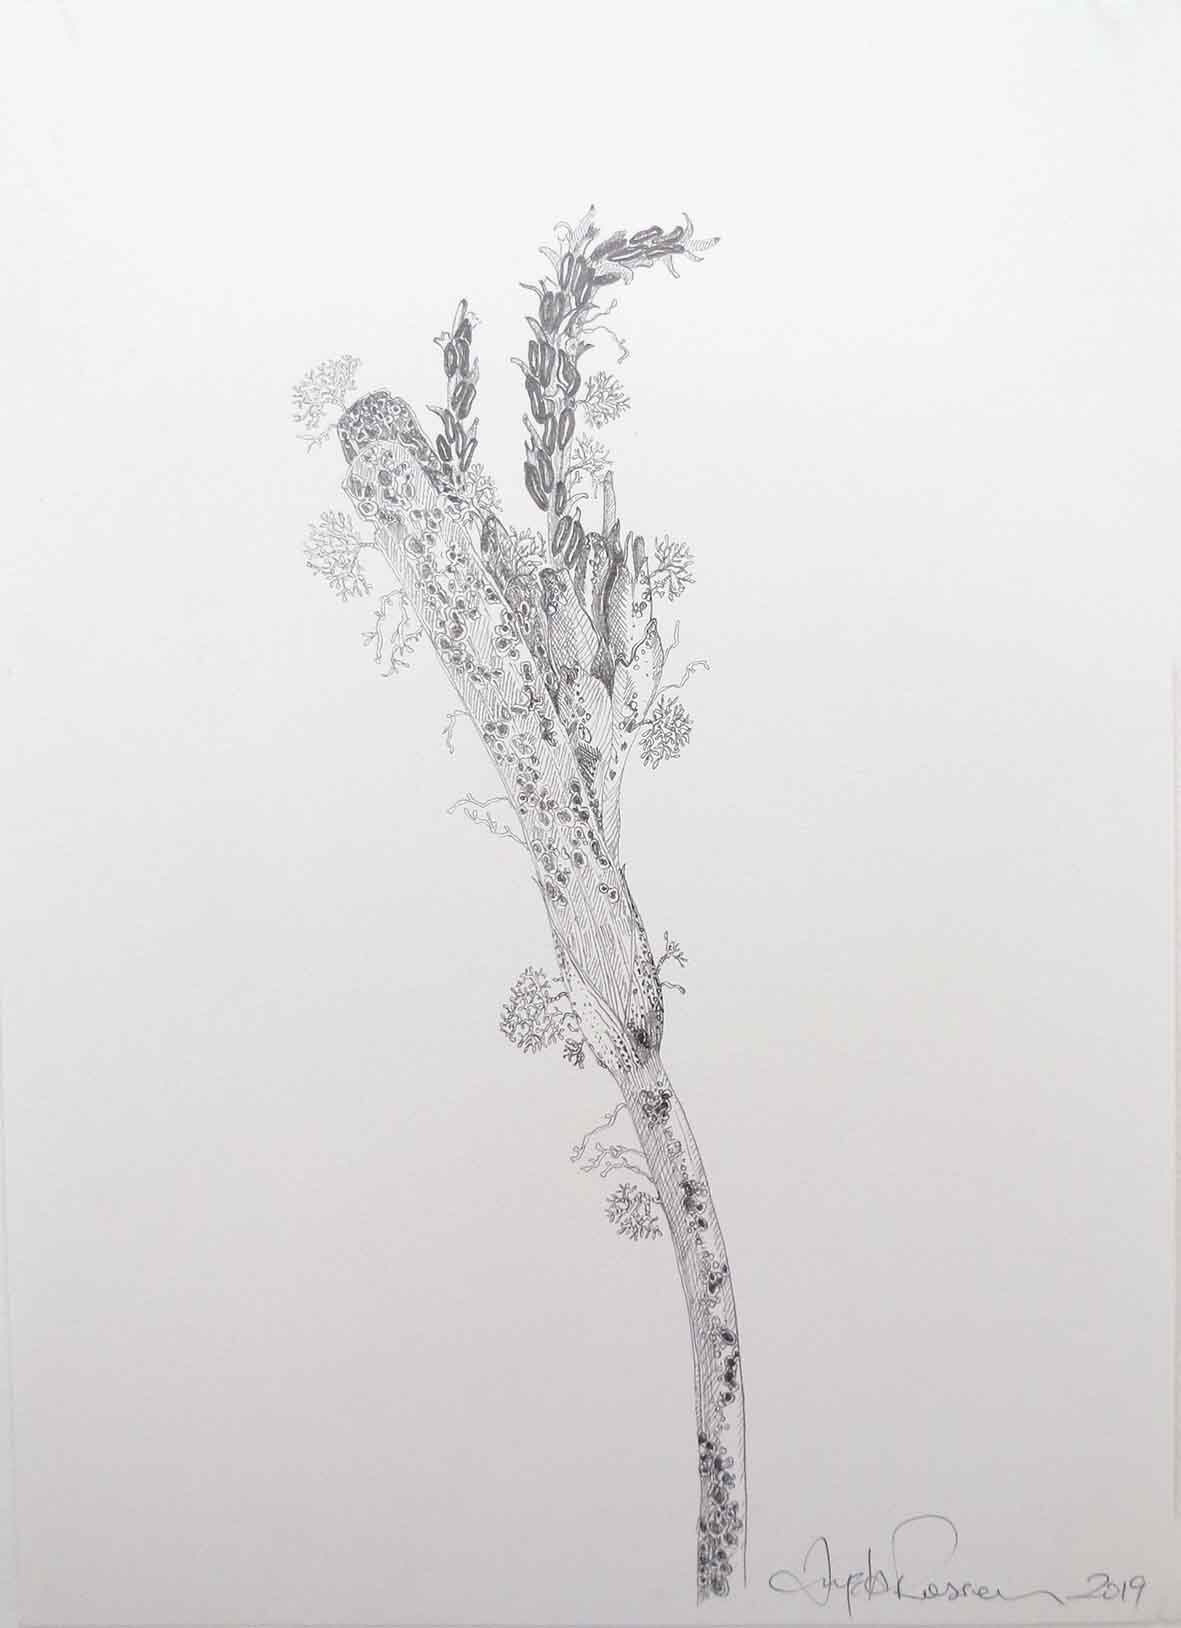 42. Angela Rossen, Posidonia australis with early fruits, 2019, pencil on paper, 42 x 30 cm $1,050